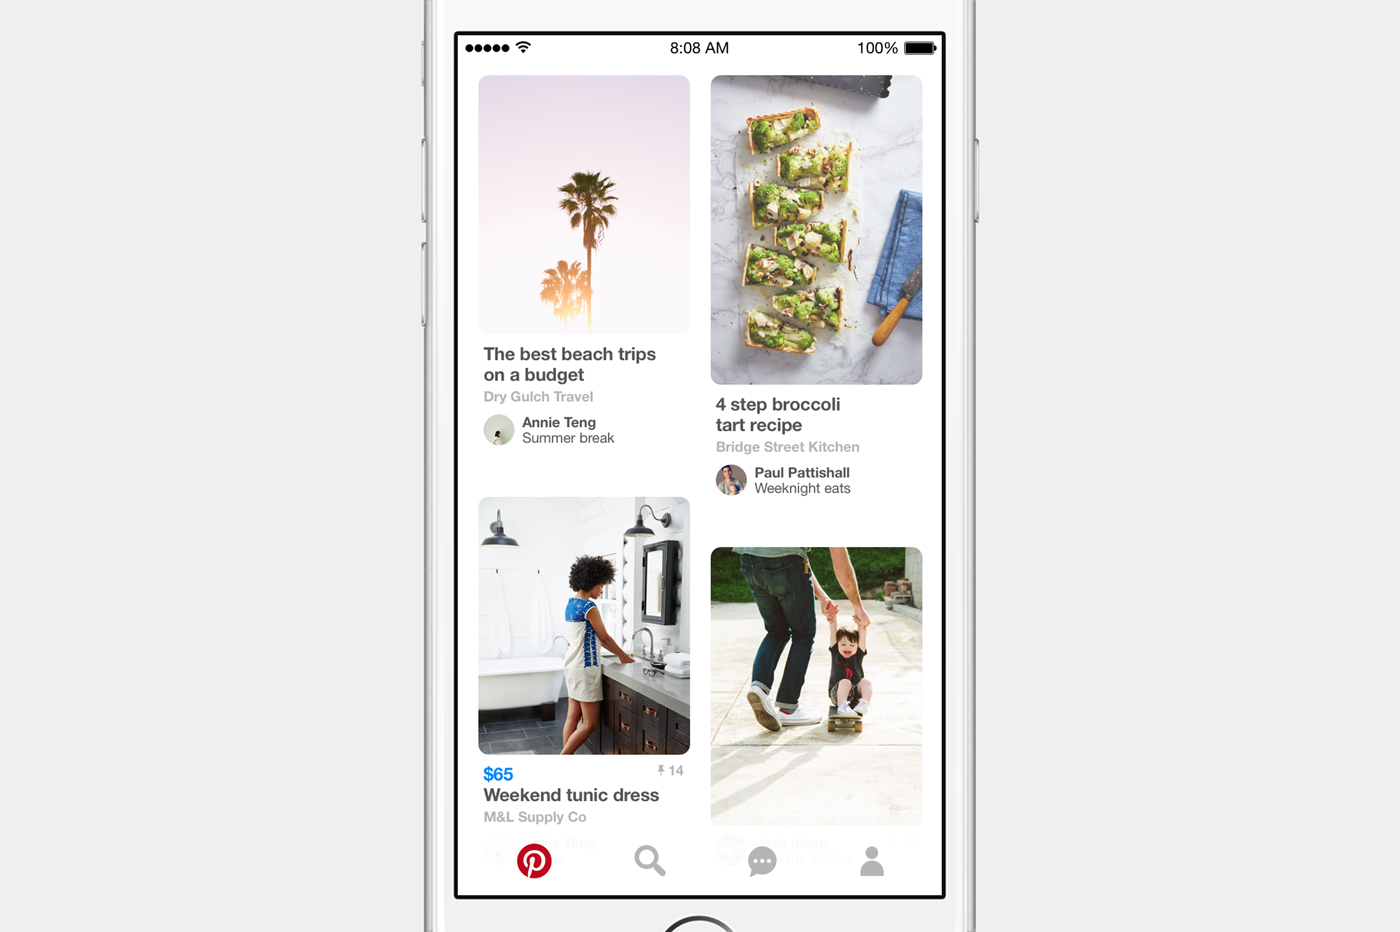 Pinterest Rolls Out Re-Vamped, Faster Loading App to Improve User Experience | Social Media Today